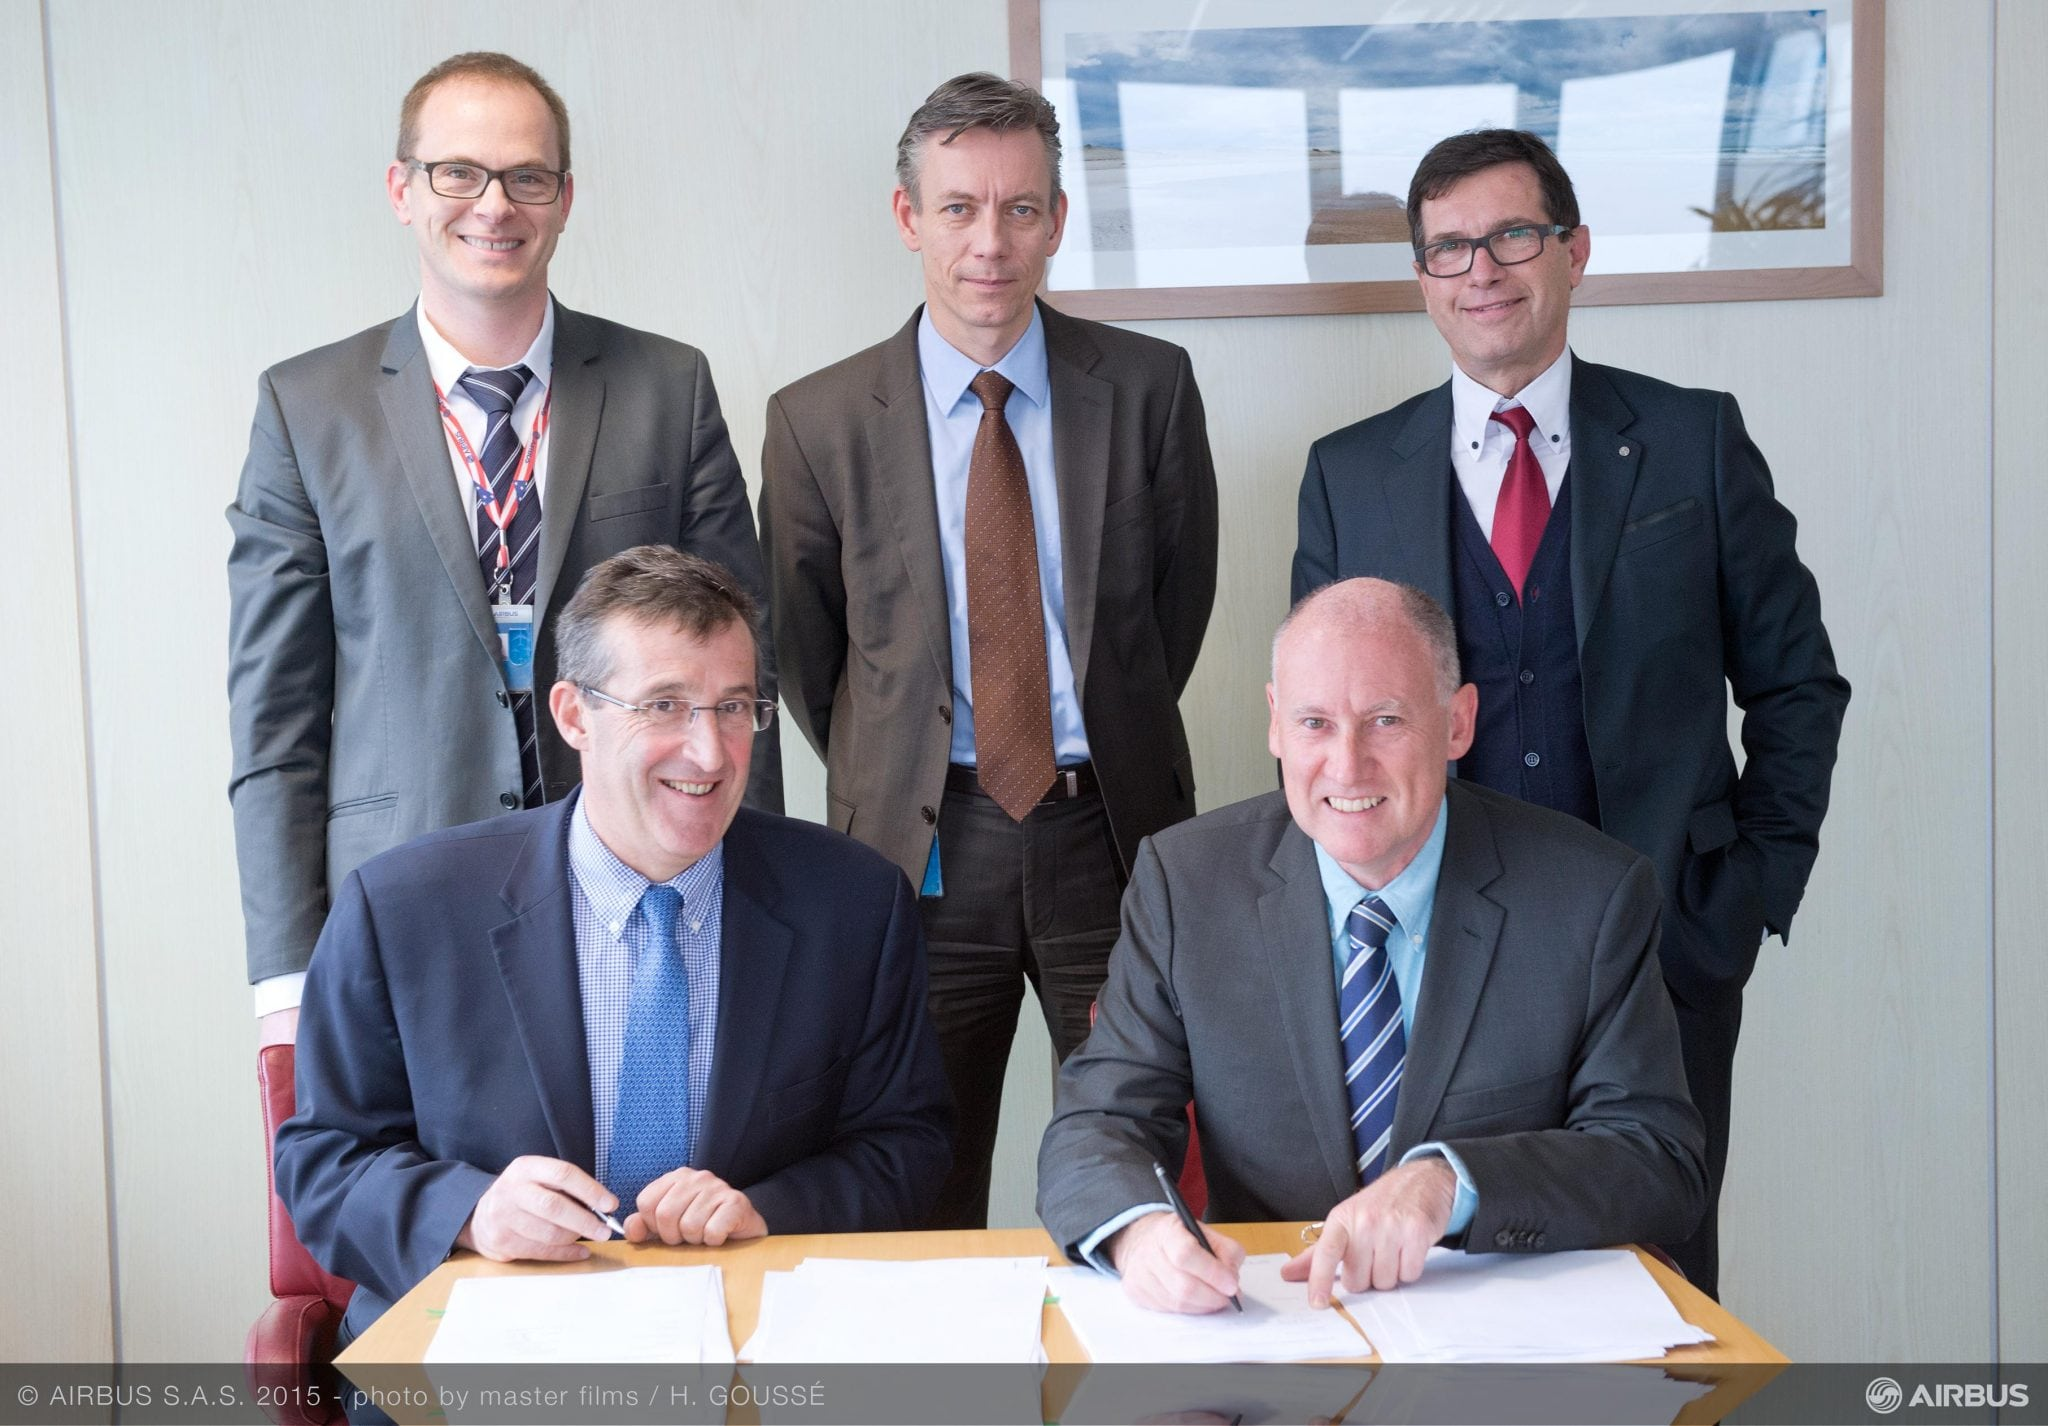 Airbus and HAECO Group to establish Airbus maintenance training services collaboration in Hong Kong.